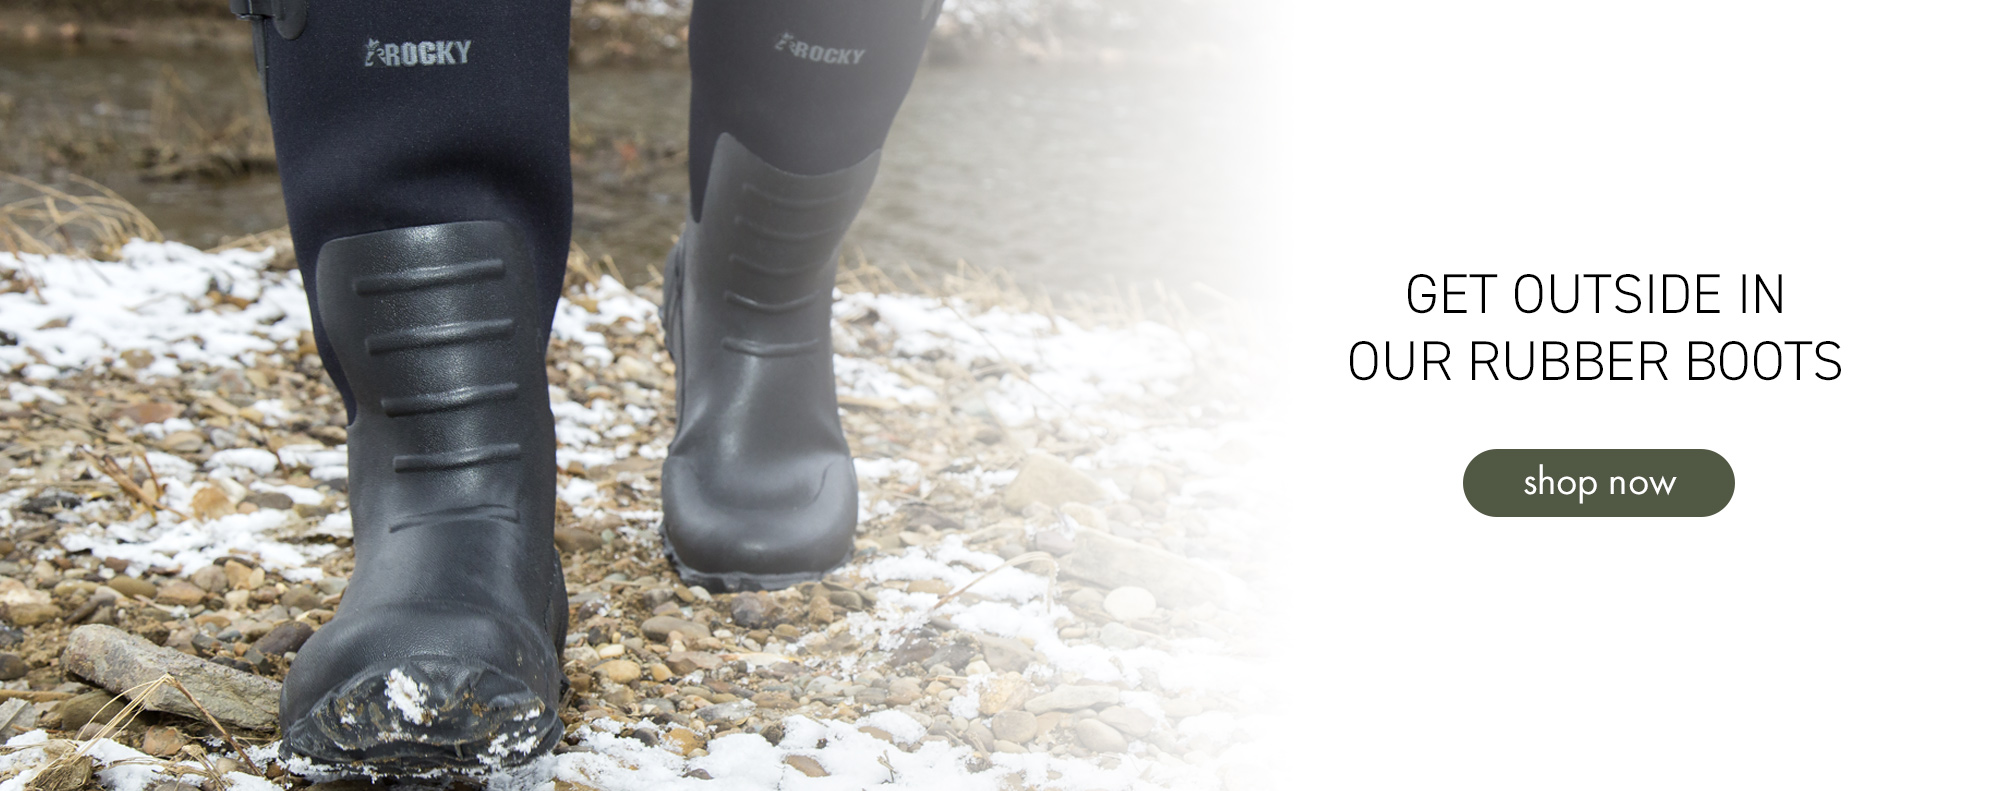 Get outside in our rubber boots. Shop now.